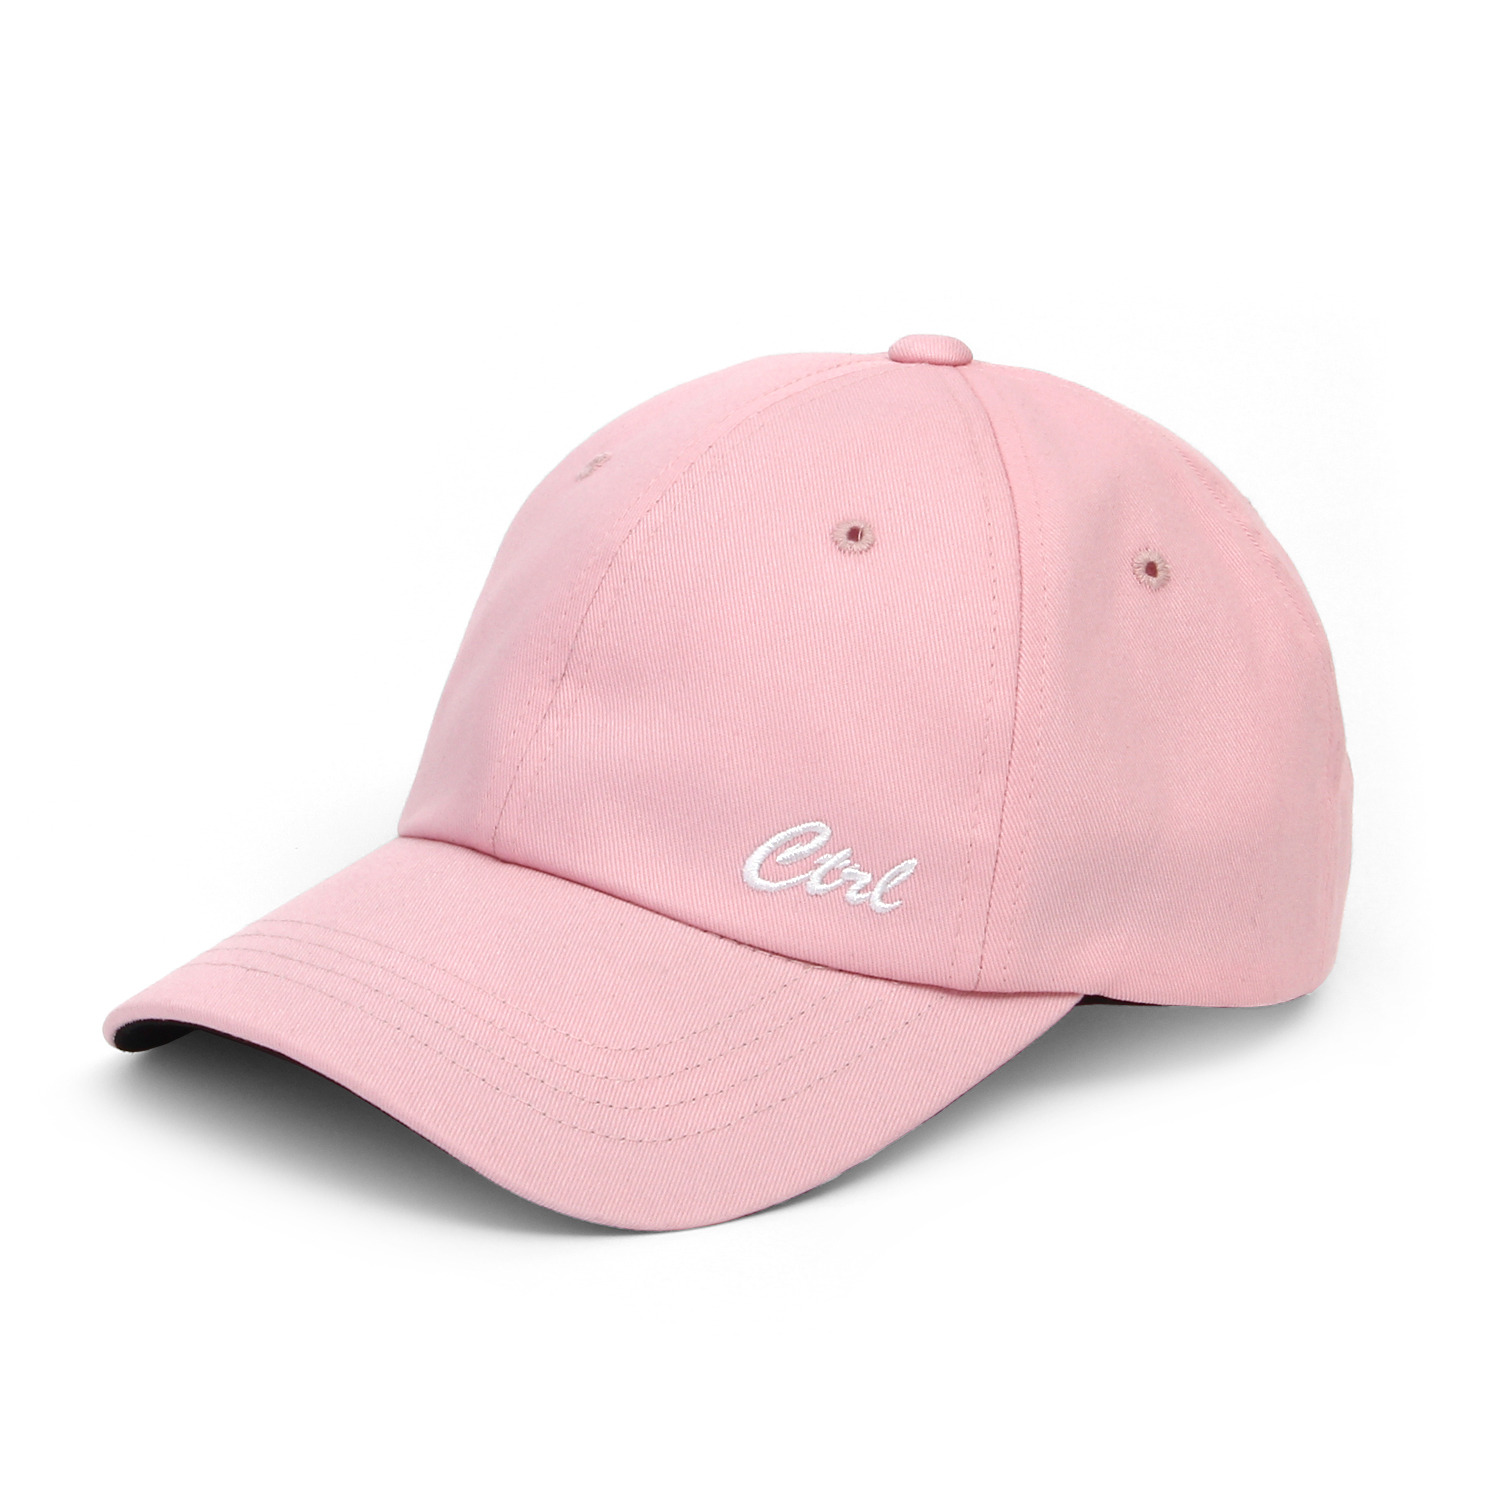 OG / AUTHENTIC B B / PINK